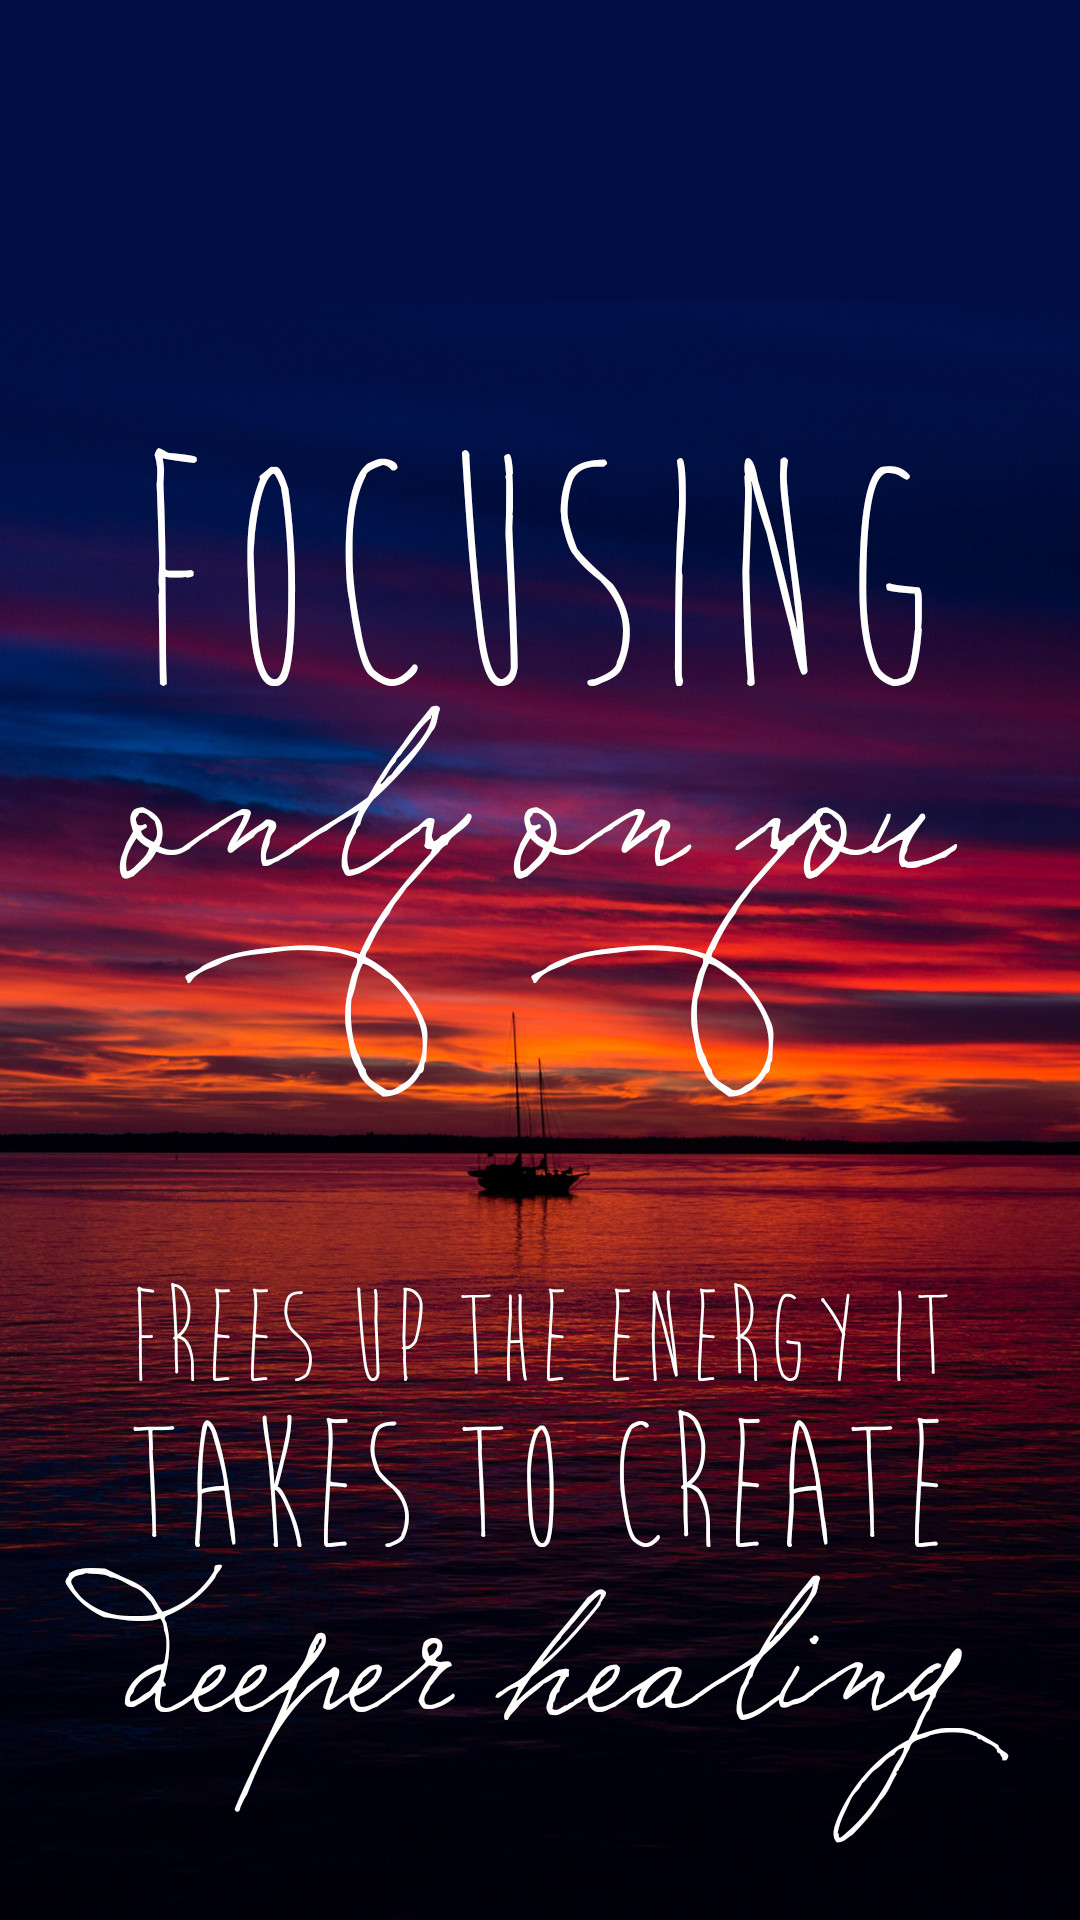 iPhone Wallpaper – Positive Quotes